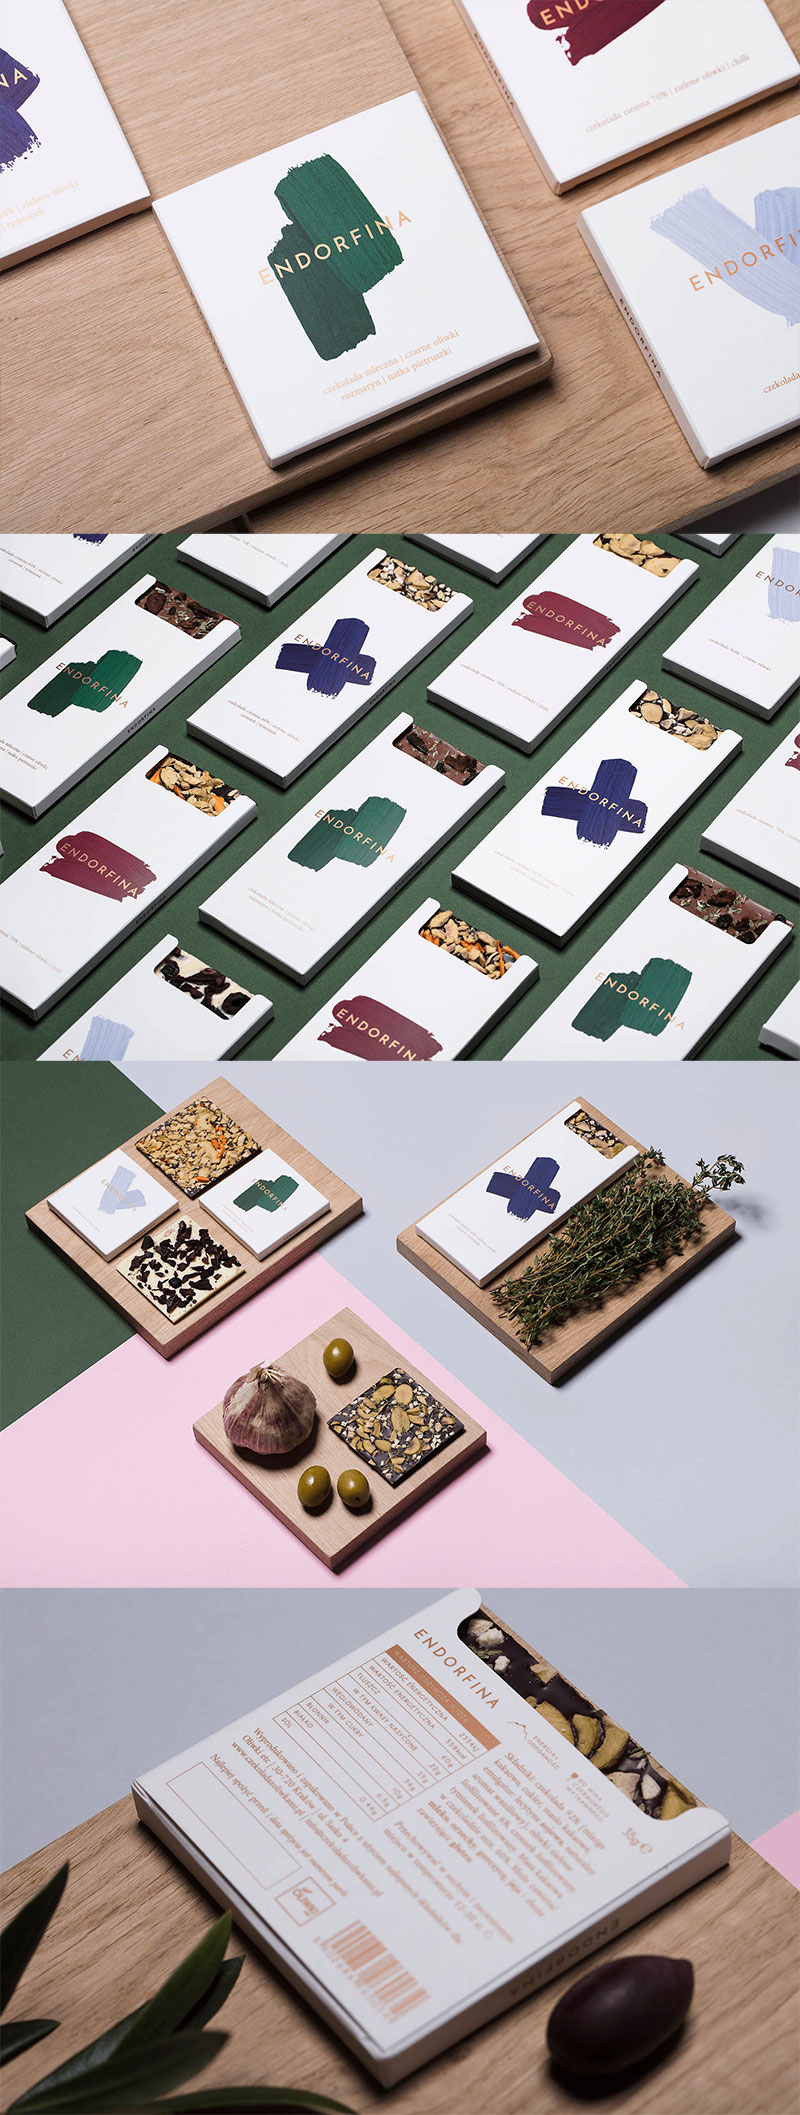 Endorfina Chocolate Branding & Packaging